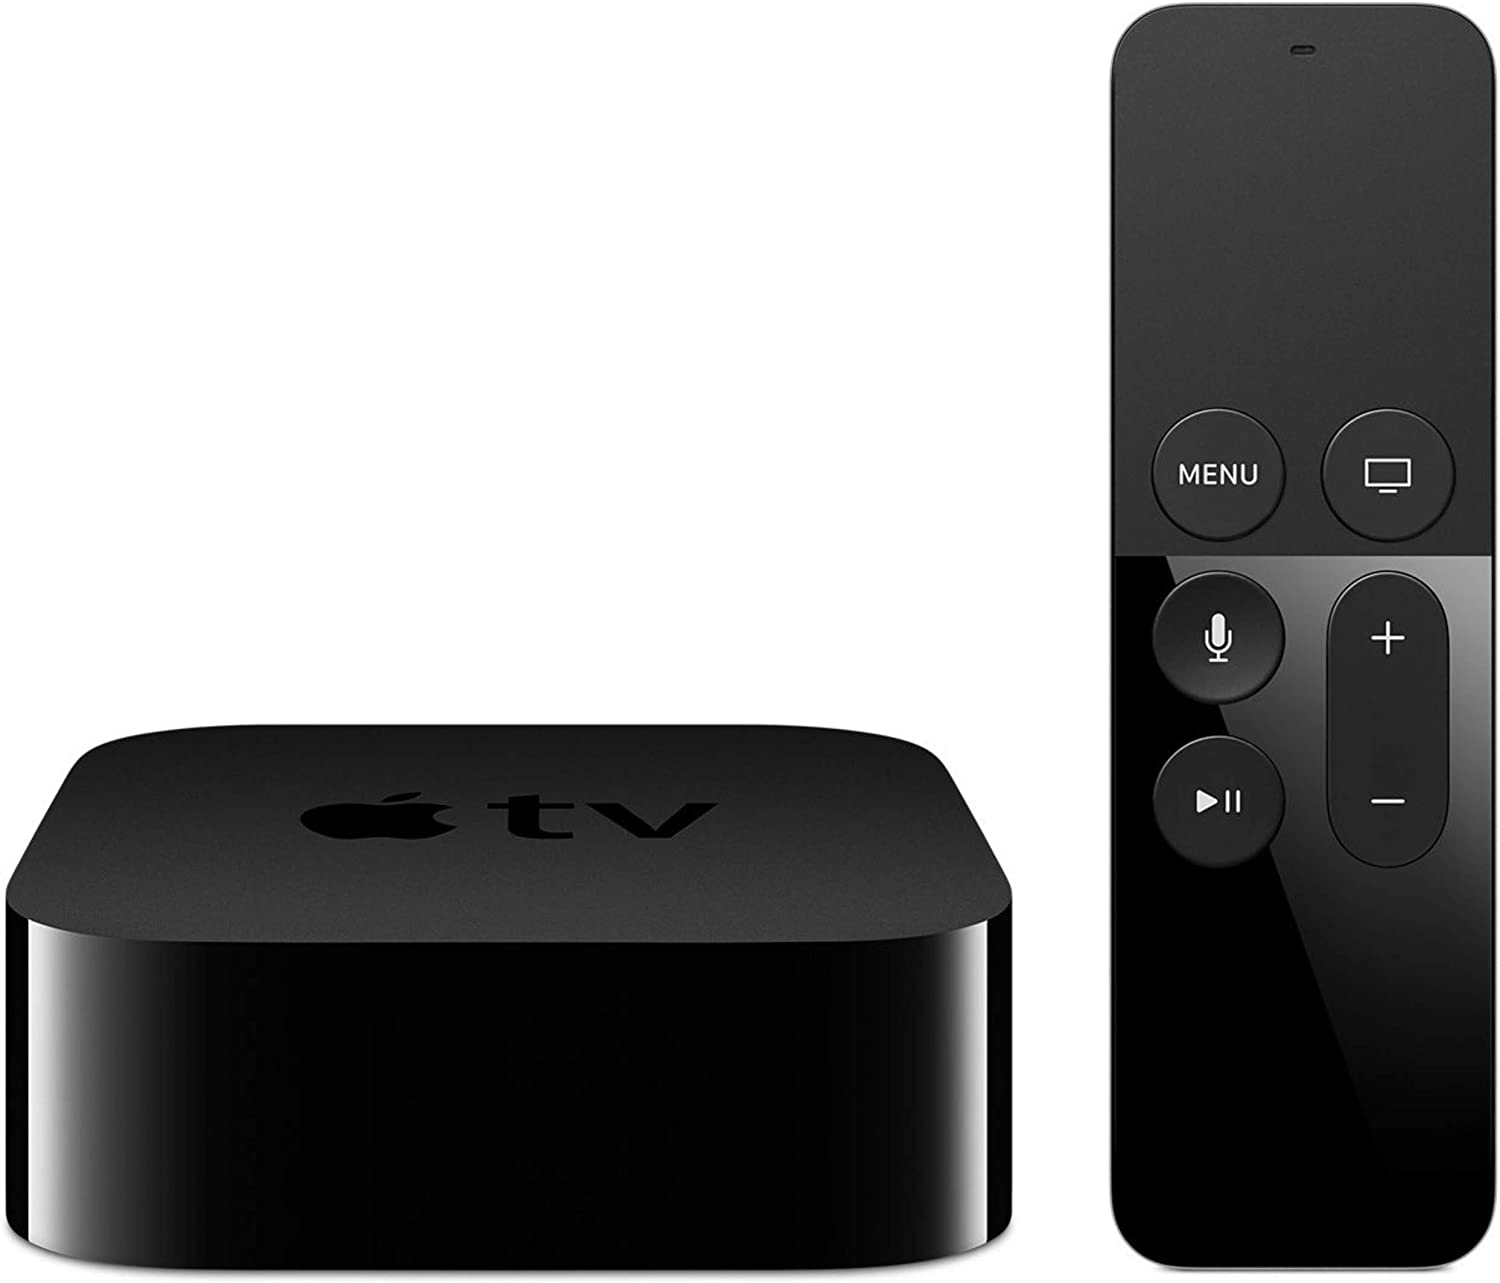 Apple TV 4K HD 32GB Streaming Media Player HDMI with Dolby Digital and Voice search by Asking the Siri Remote, Black, MQD22LL/A-32G (Renewed)